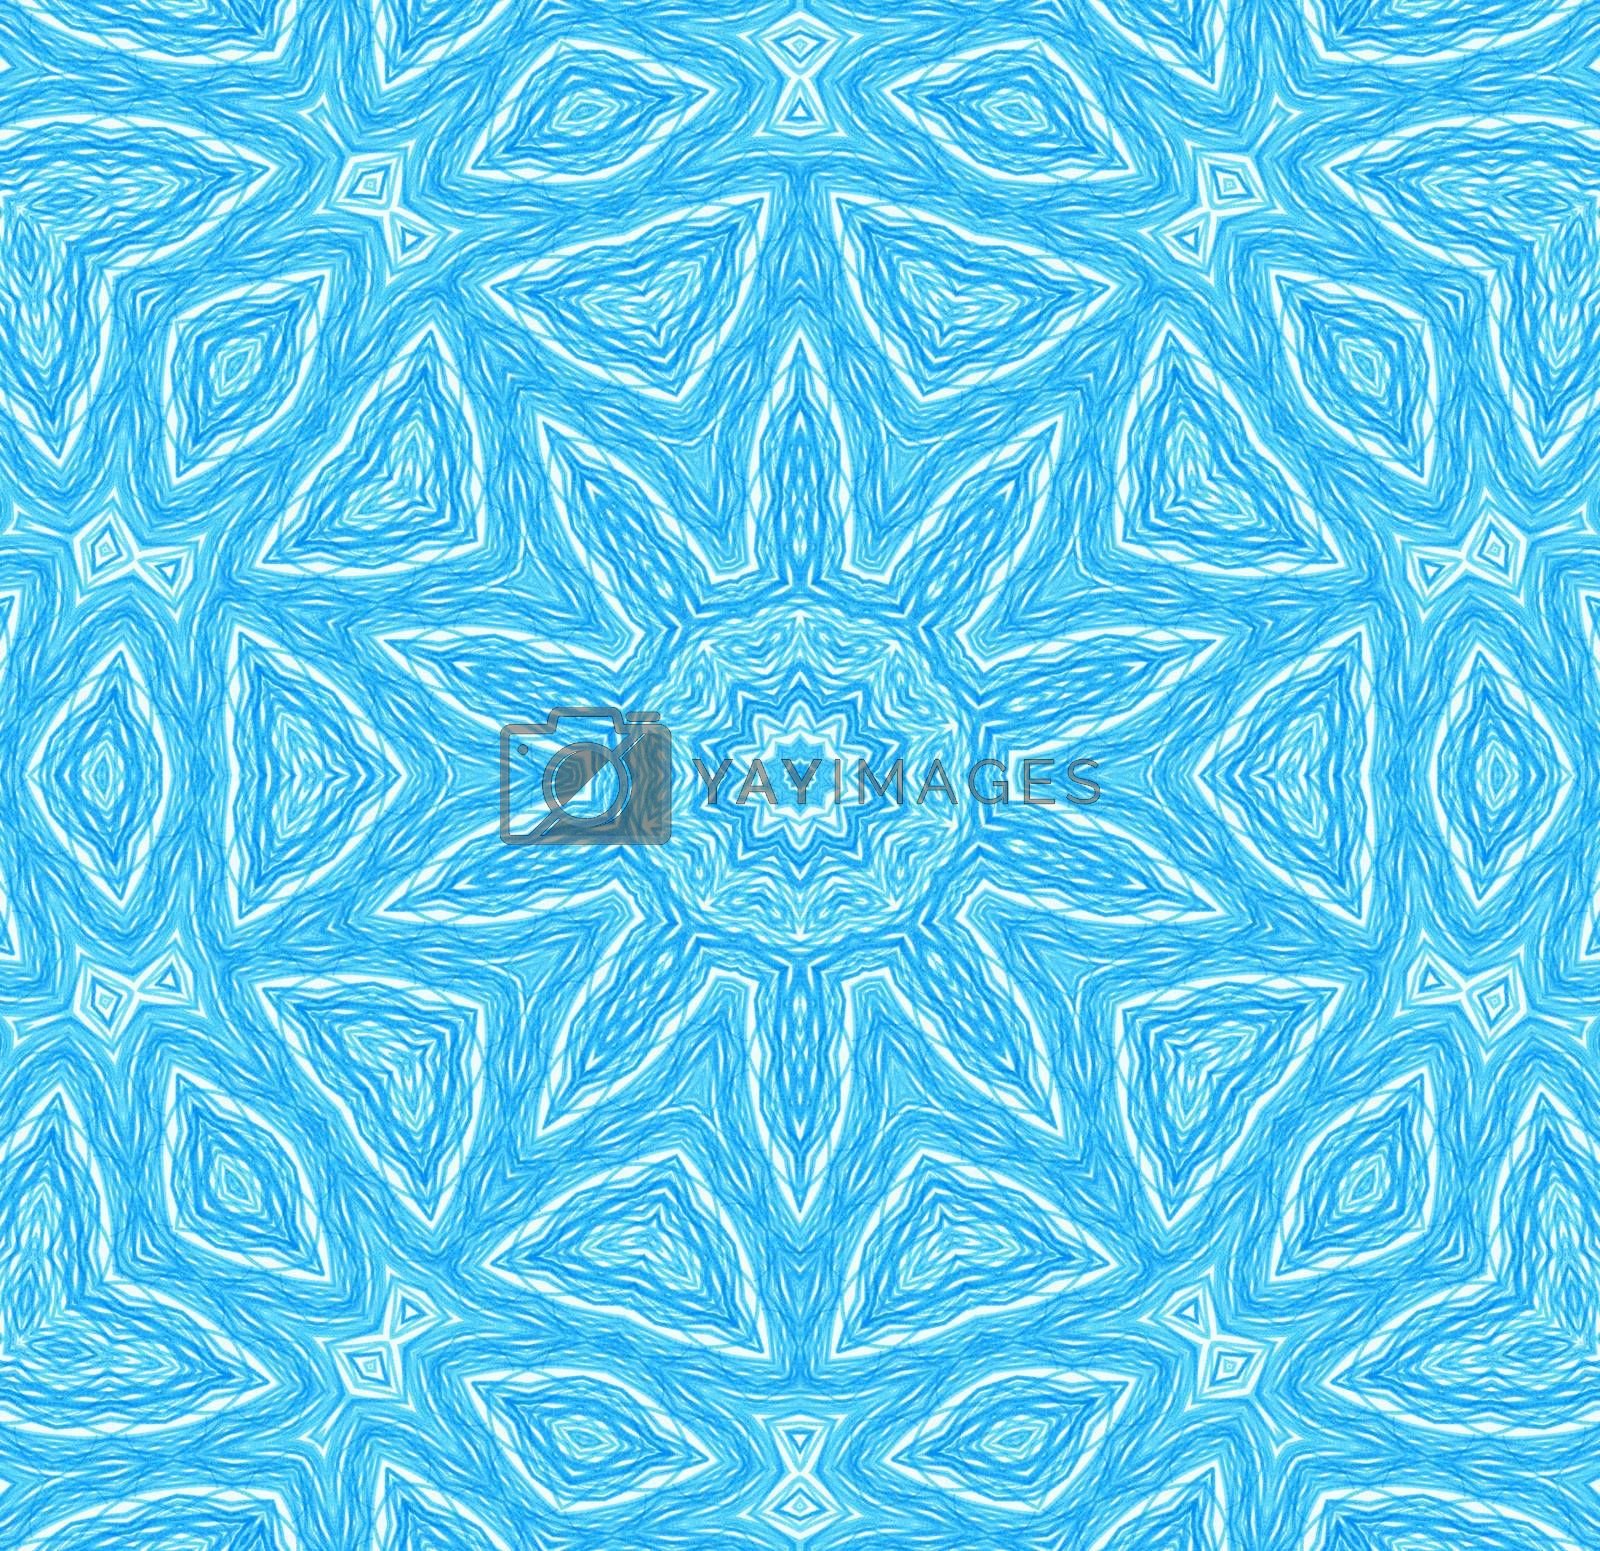 Abstract blue concentric pattern by dink101